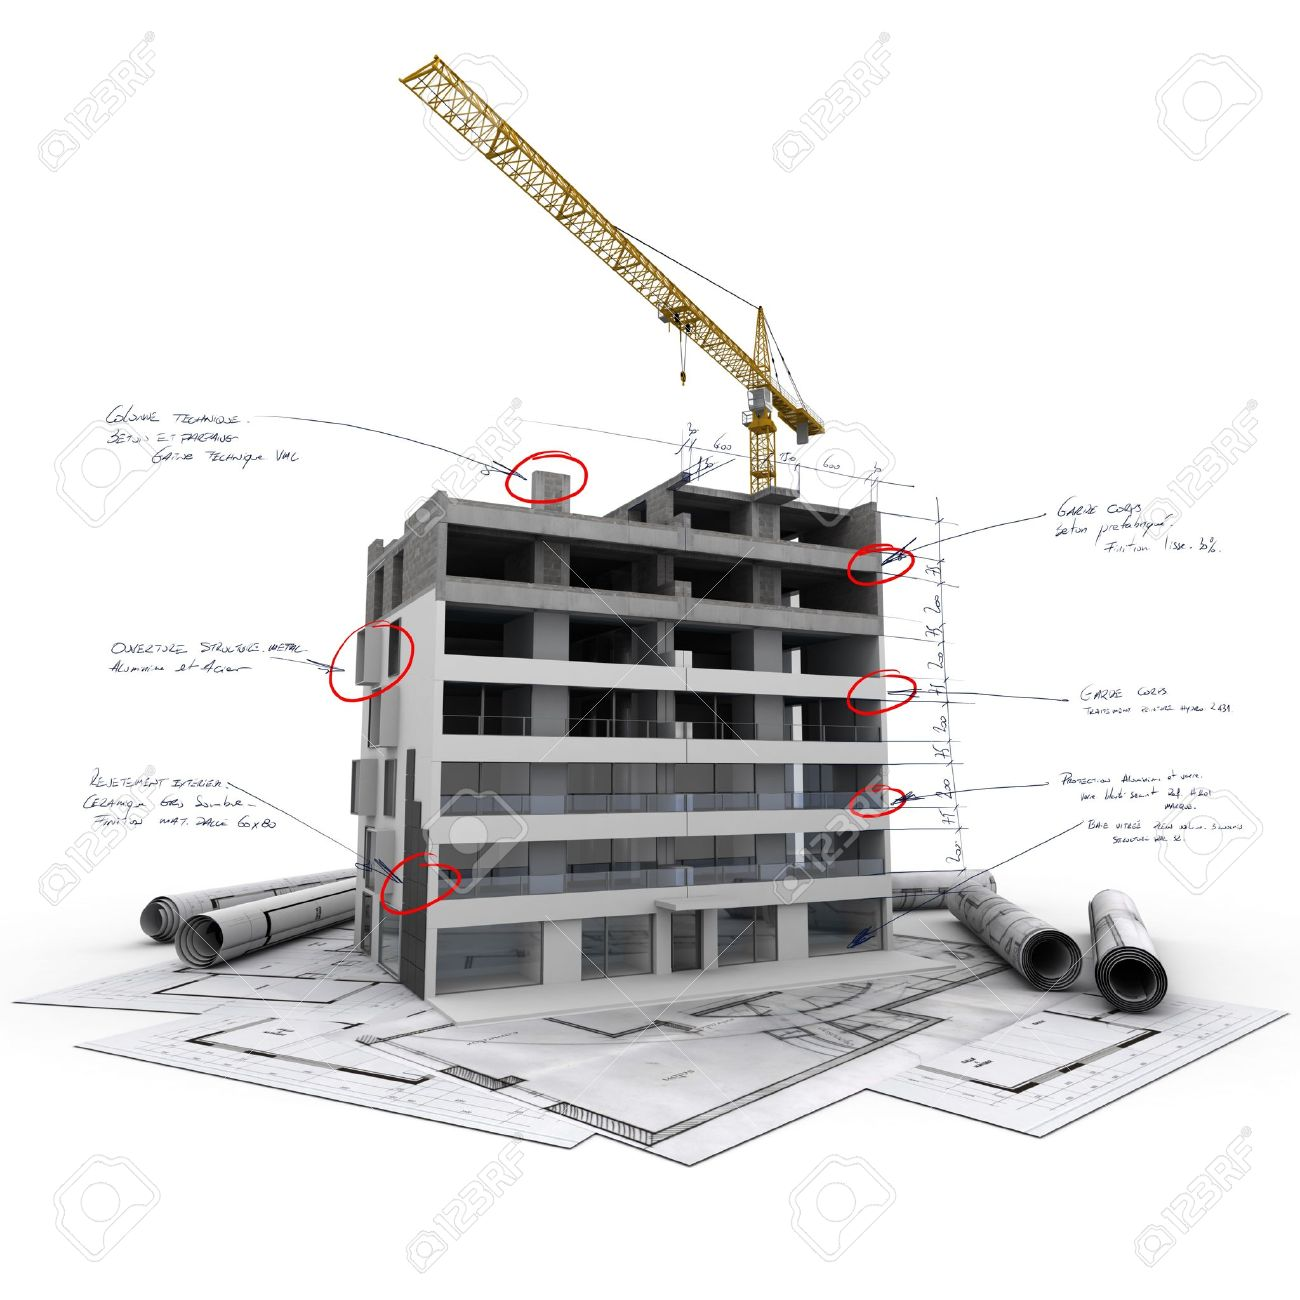 Building under construction with technical notes on top of blueprints - 20857451